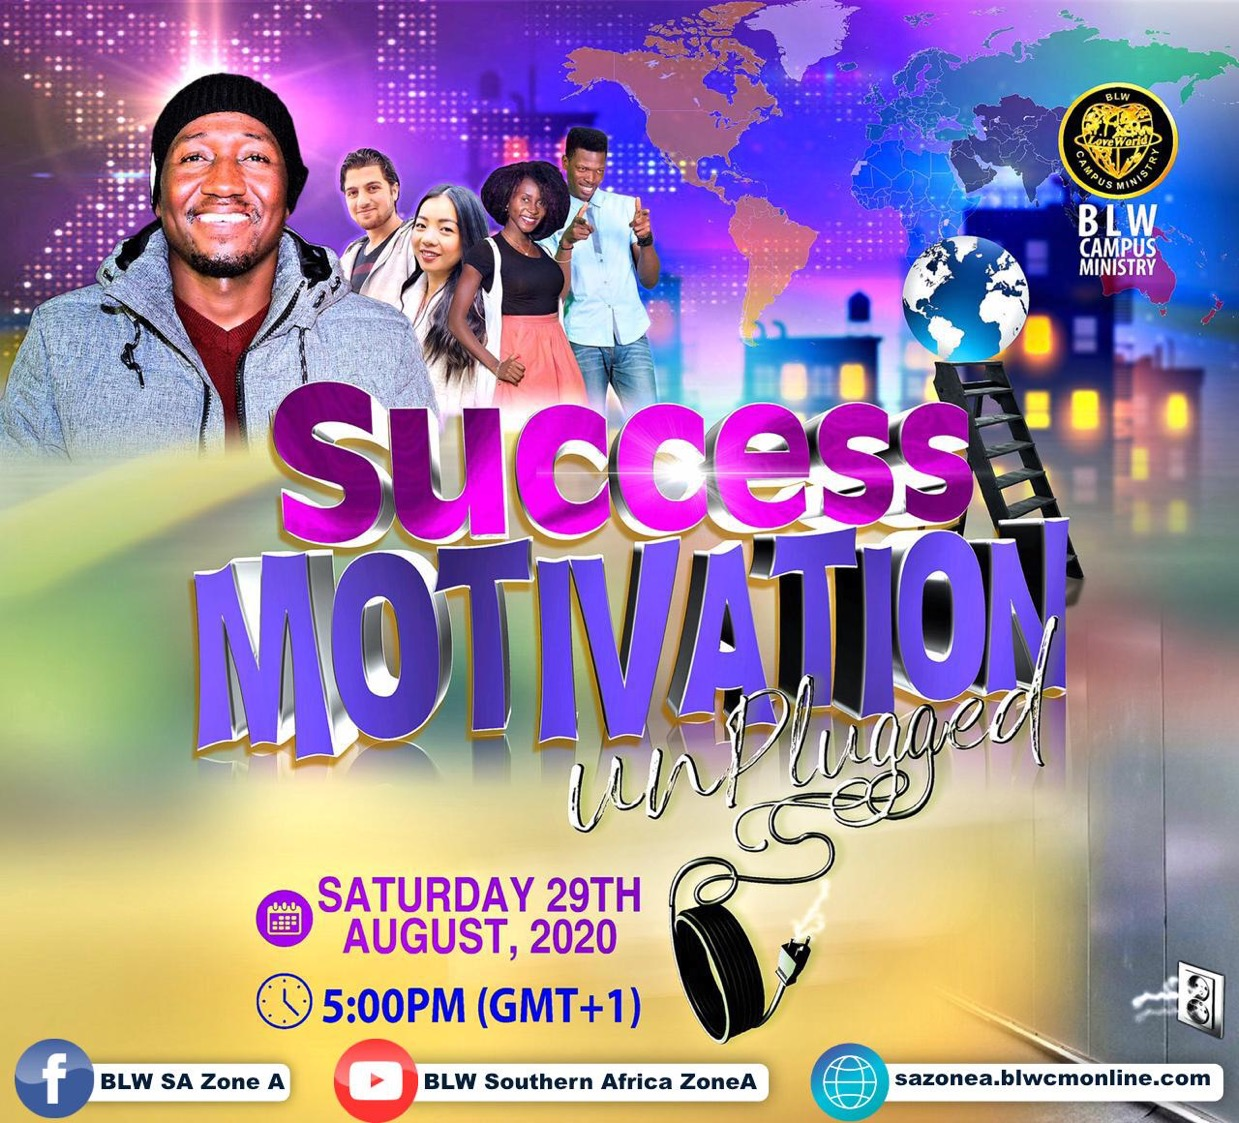 SUCCESS MOTIVATION UNPLUGGED Happening on